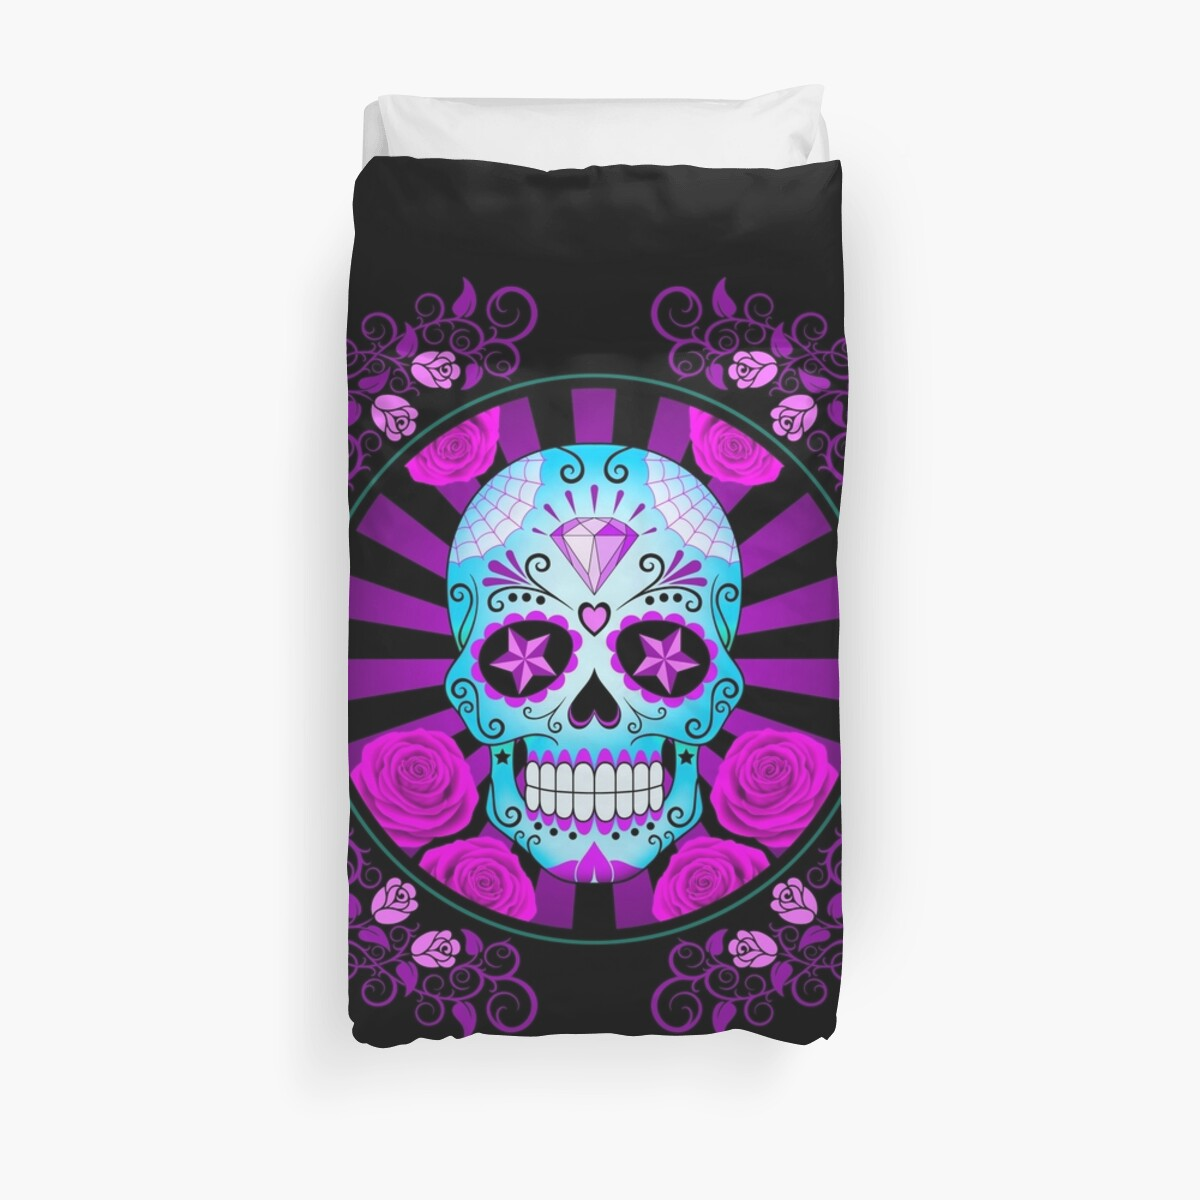 Quot Blue And Purple Sugar Skull With Roses Quot Duvet Covers By